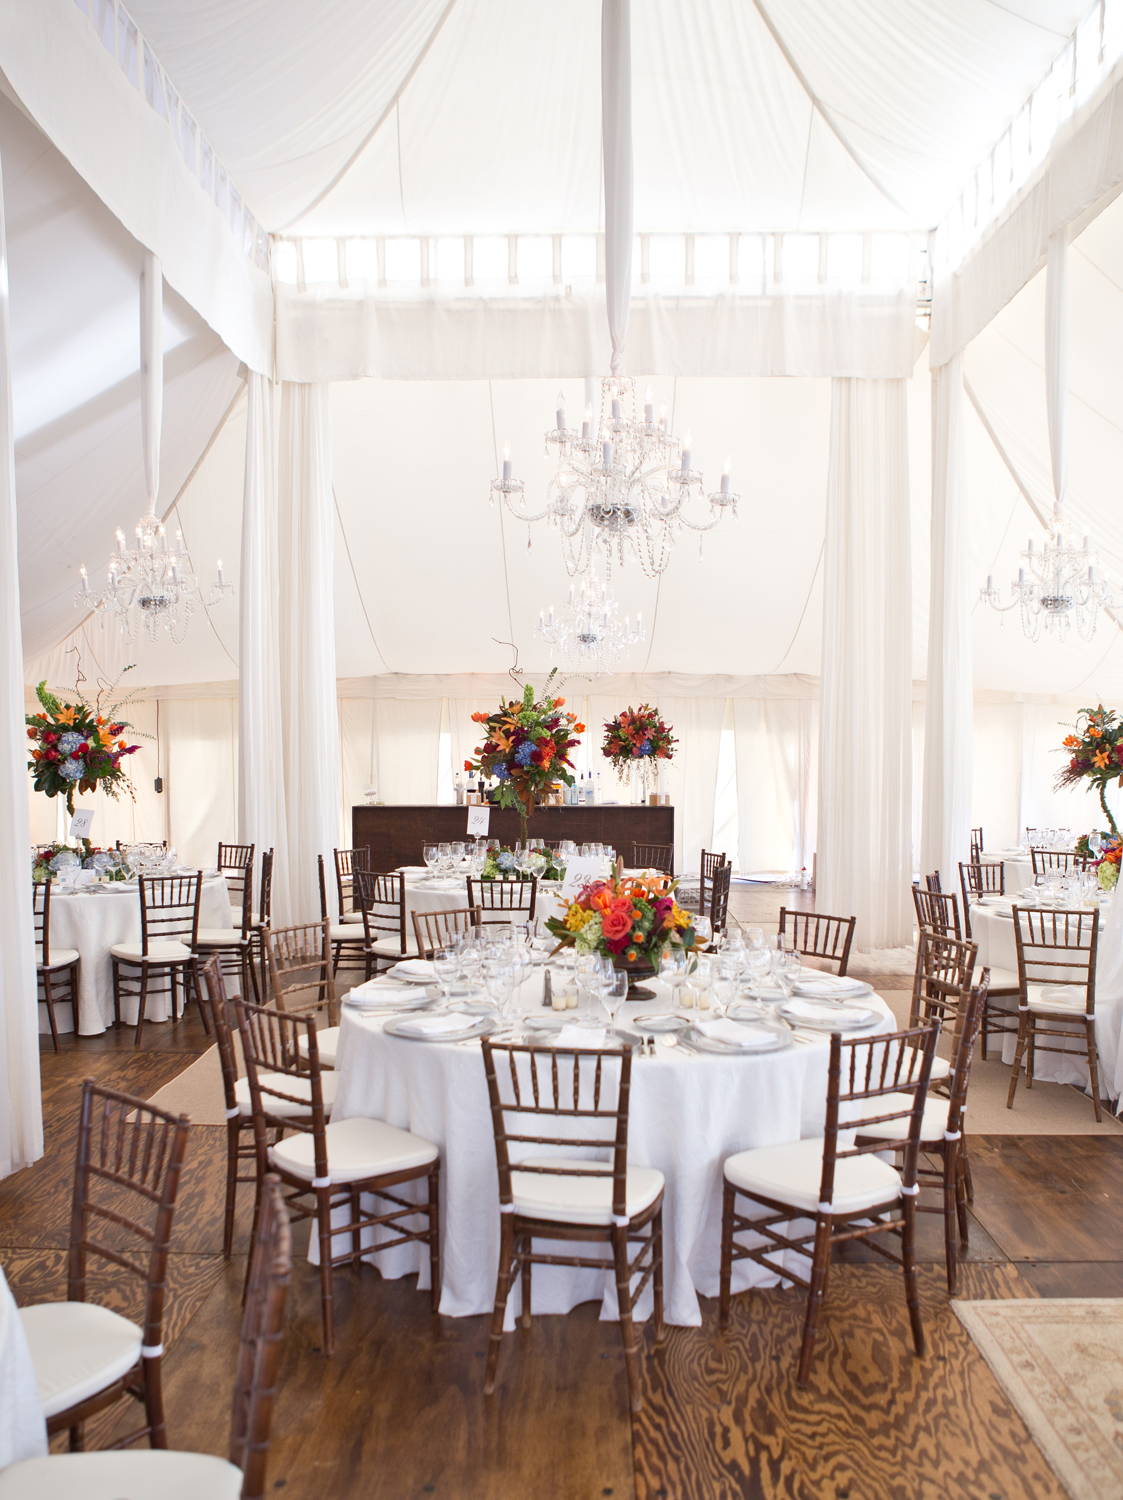 Inside reception dinner tent with white tables, farm chairs and fall centerpieces